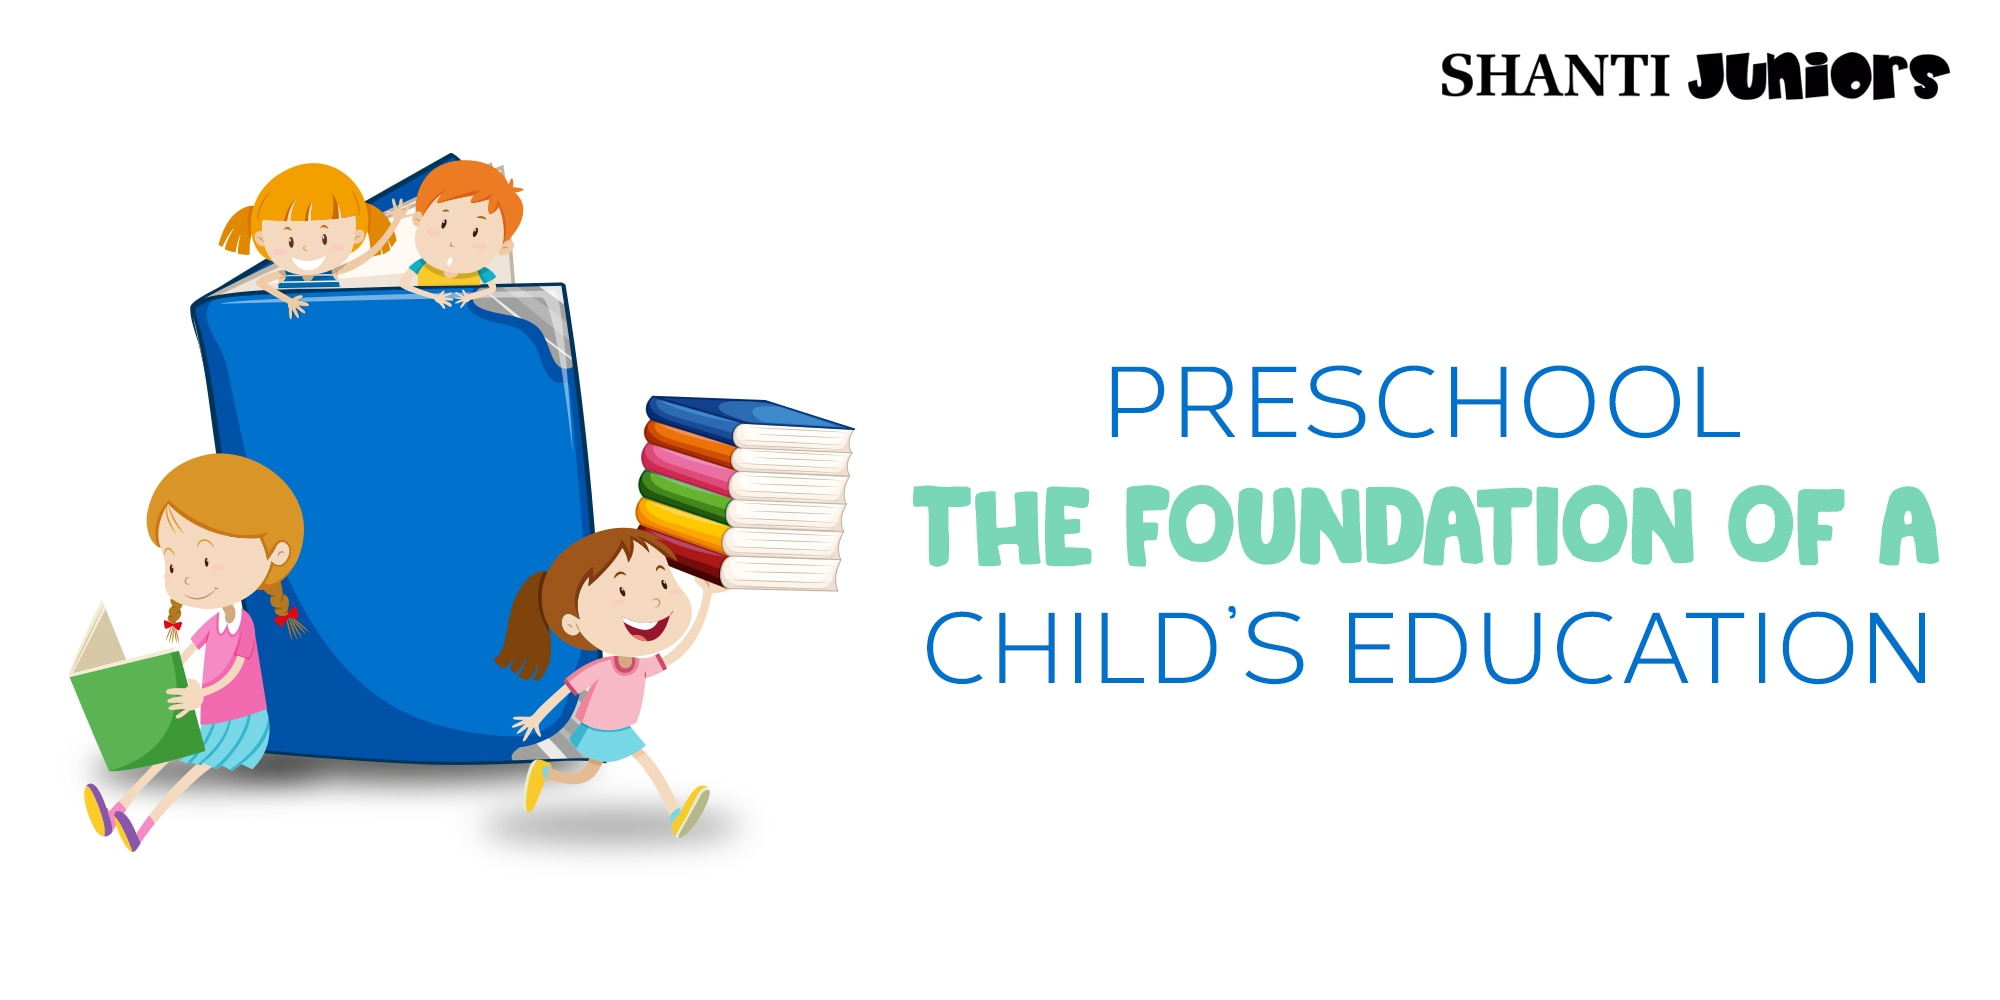 Preschool: The Foundation of a Child's Education